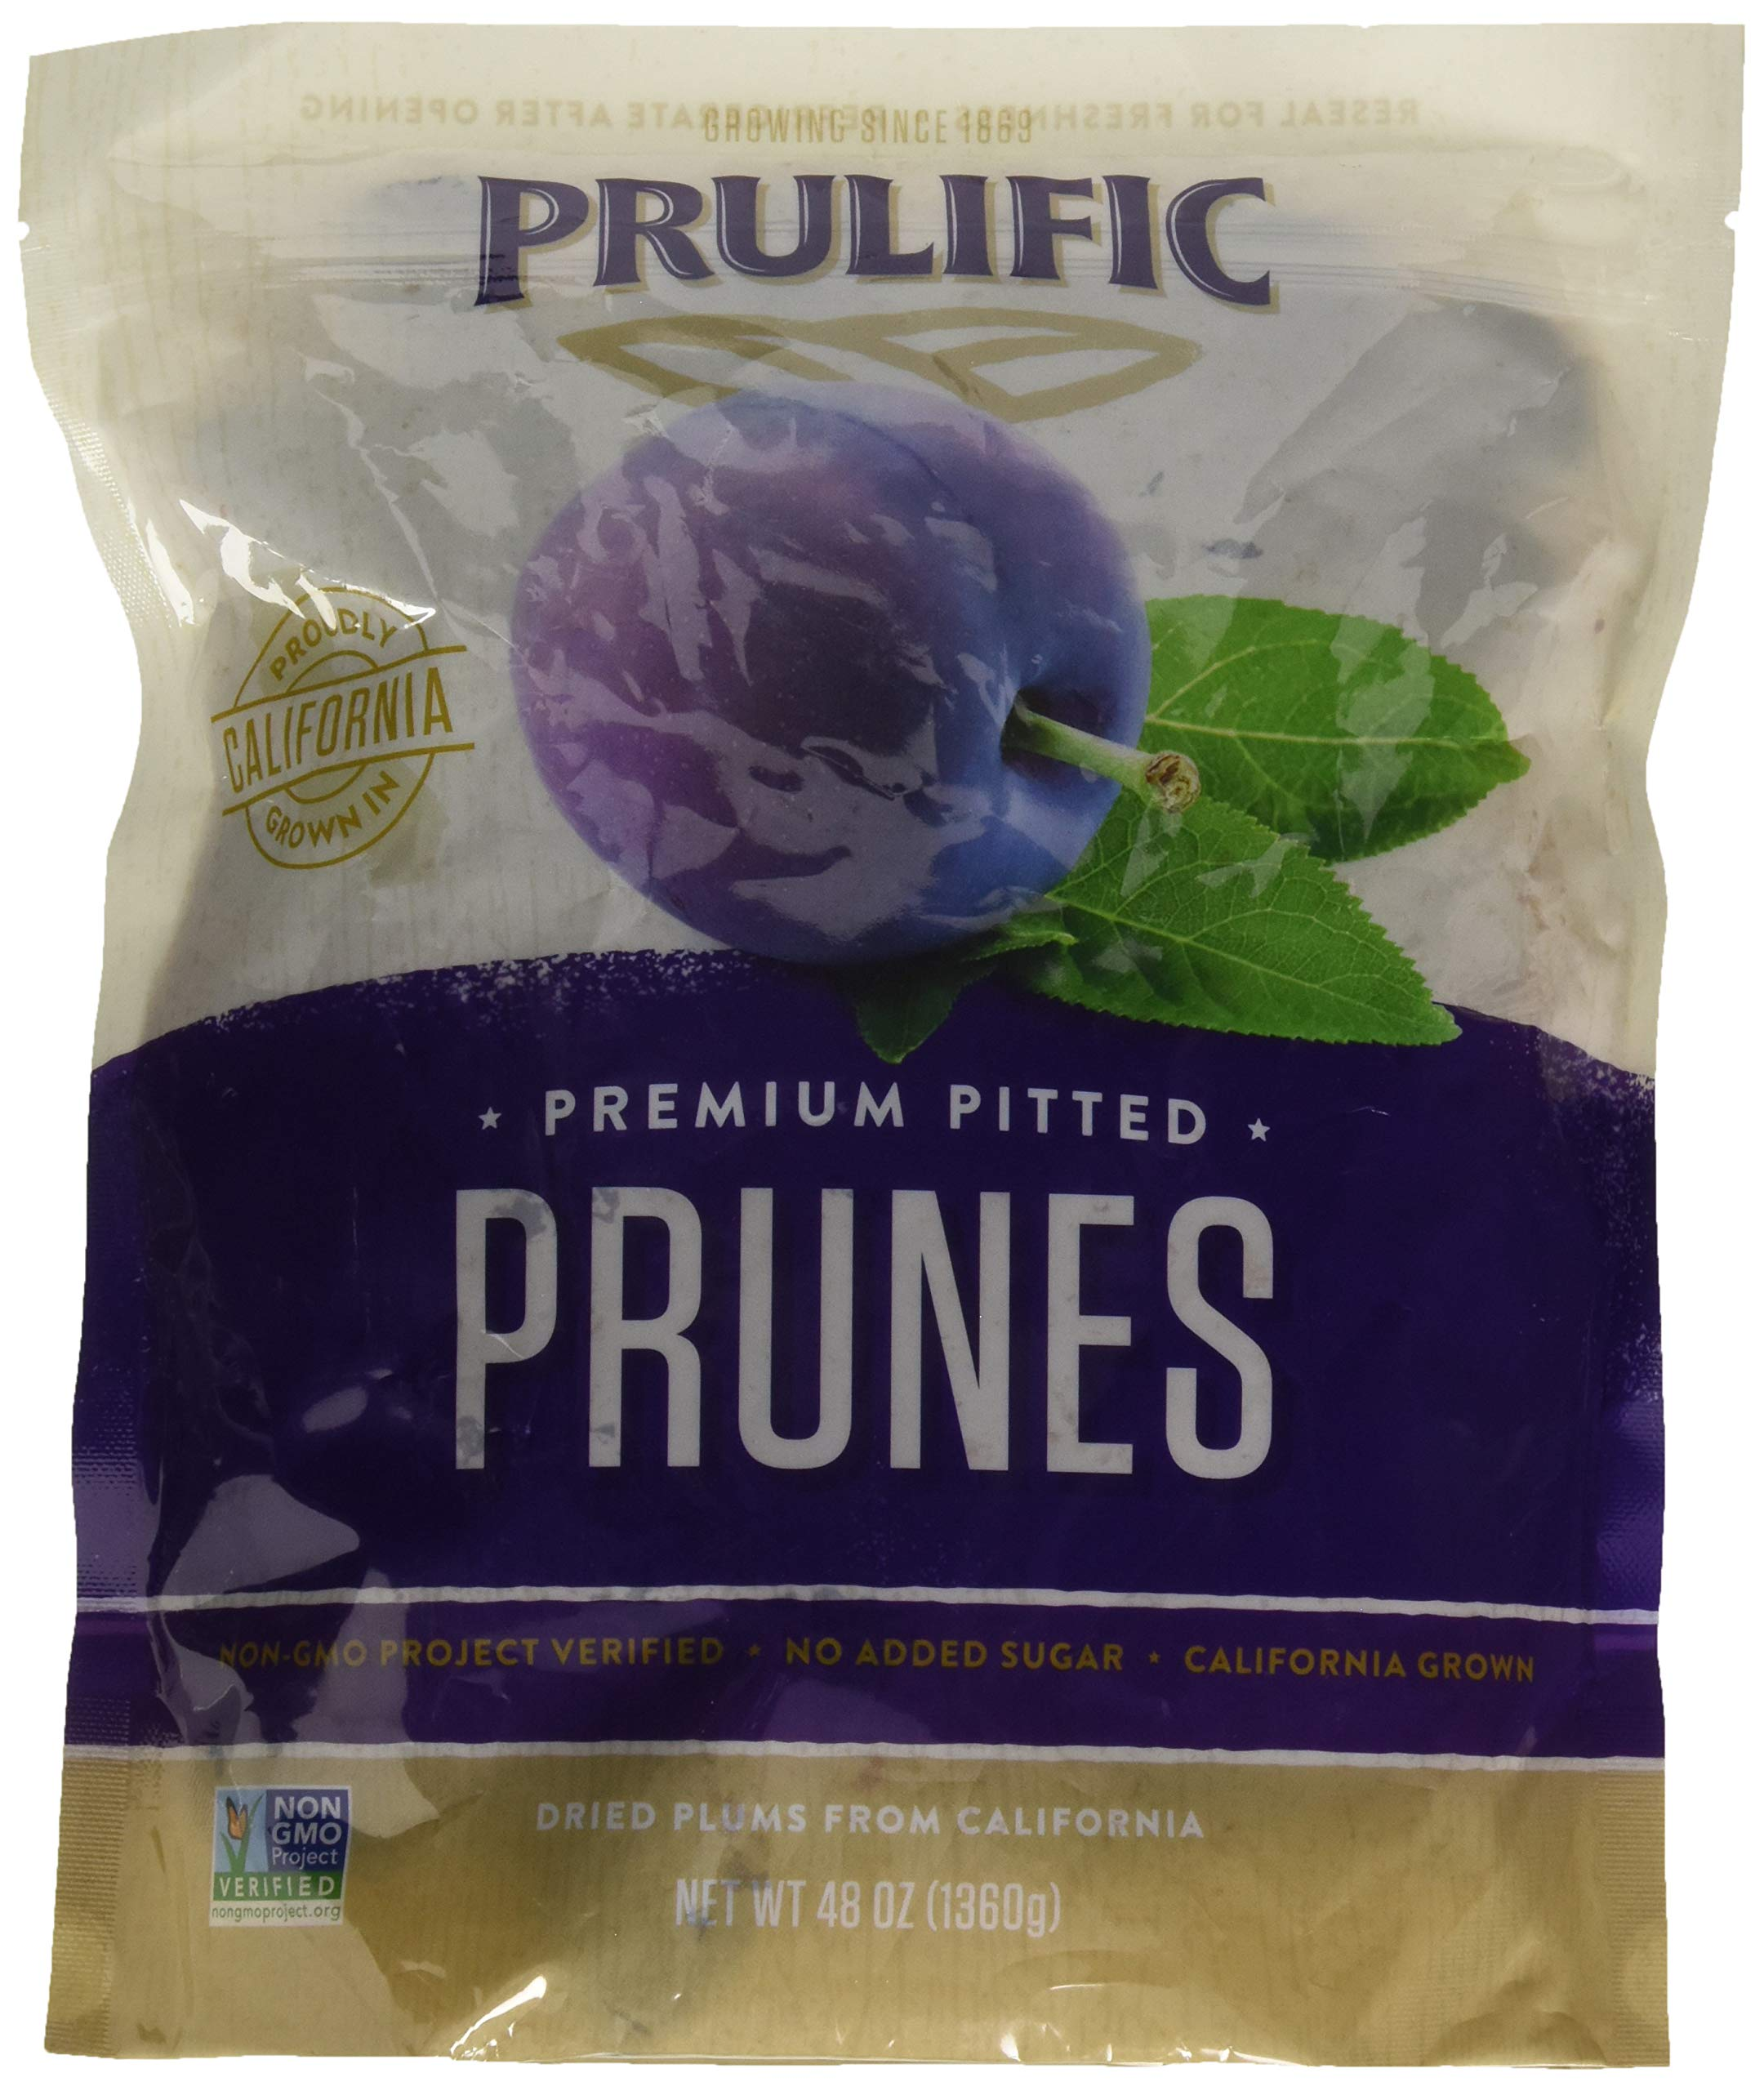 Prulific Premium Pitted Prunes, 48oz - 3 Pack